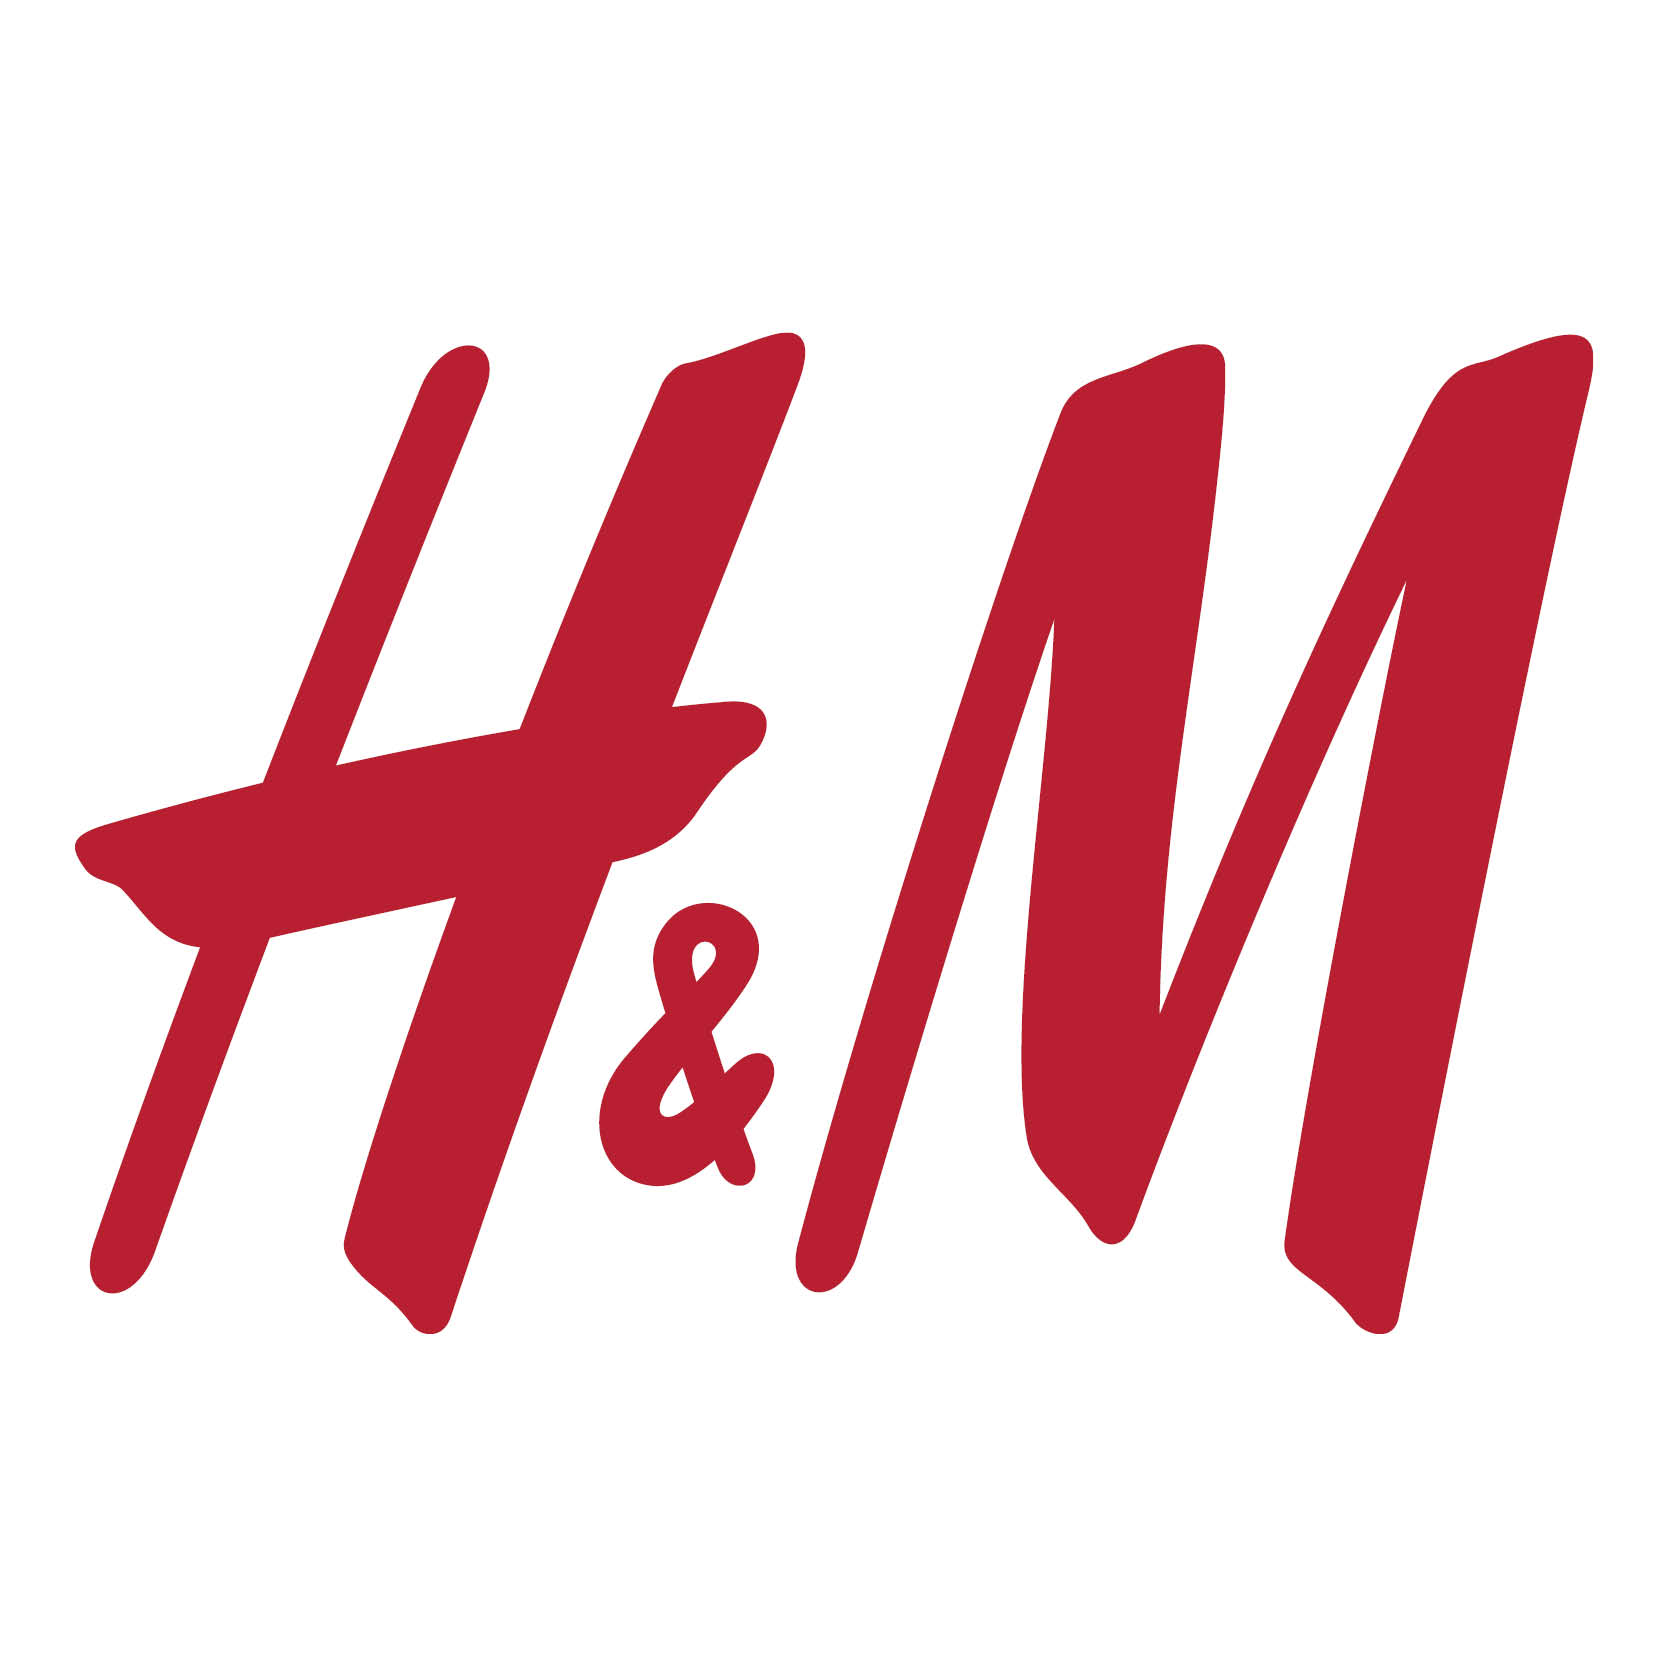 H&M Let's remake - join the recycling revolution!